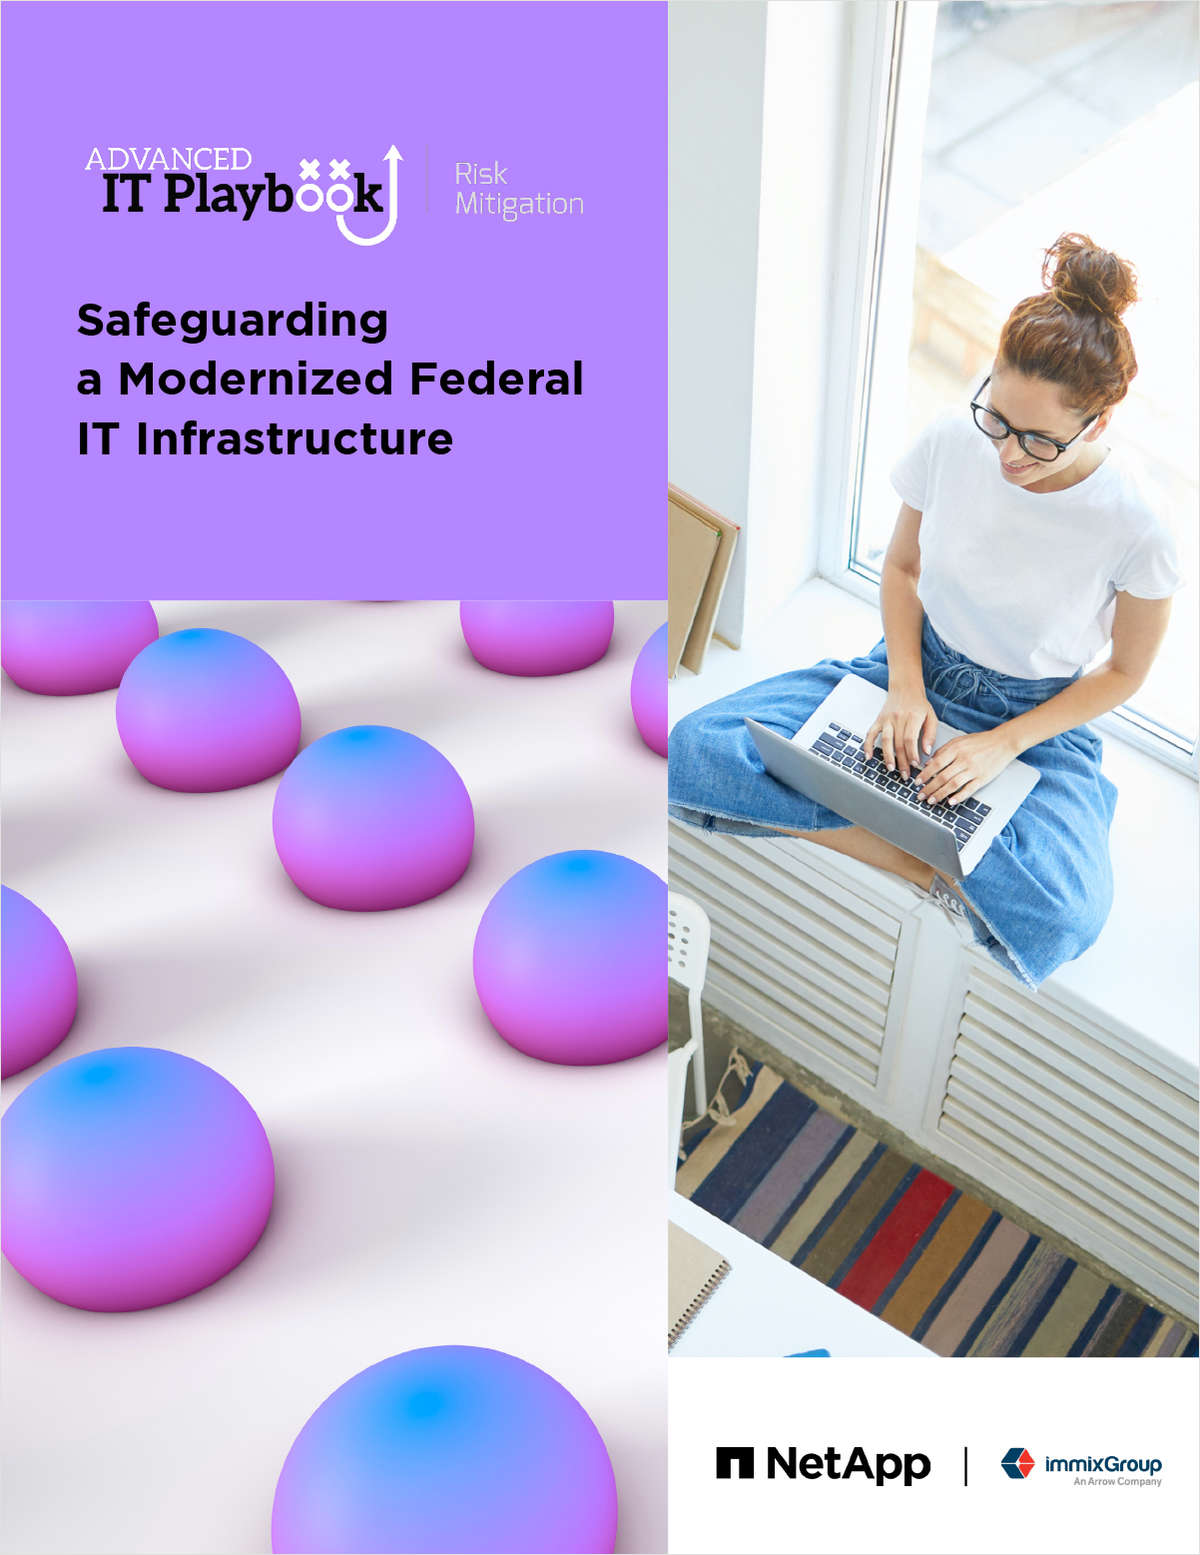 Advanced IT Playbook | Risk Mitigation | Safeguarding a Modernized Federal IT Infrastructure